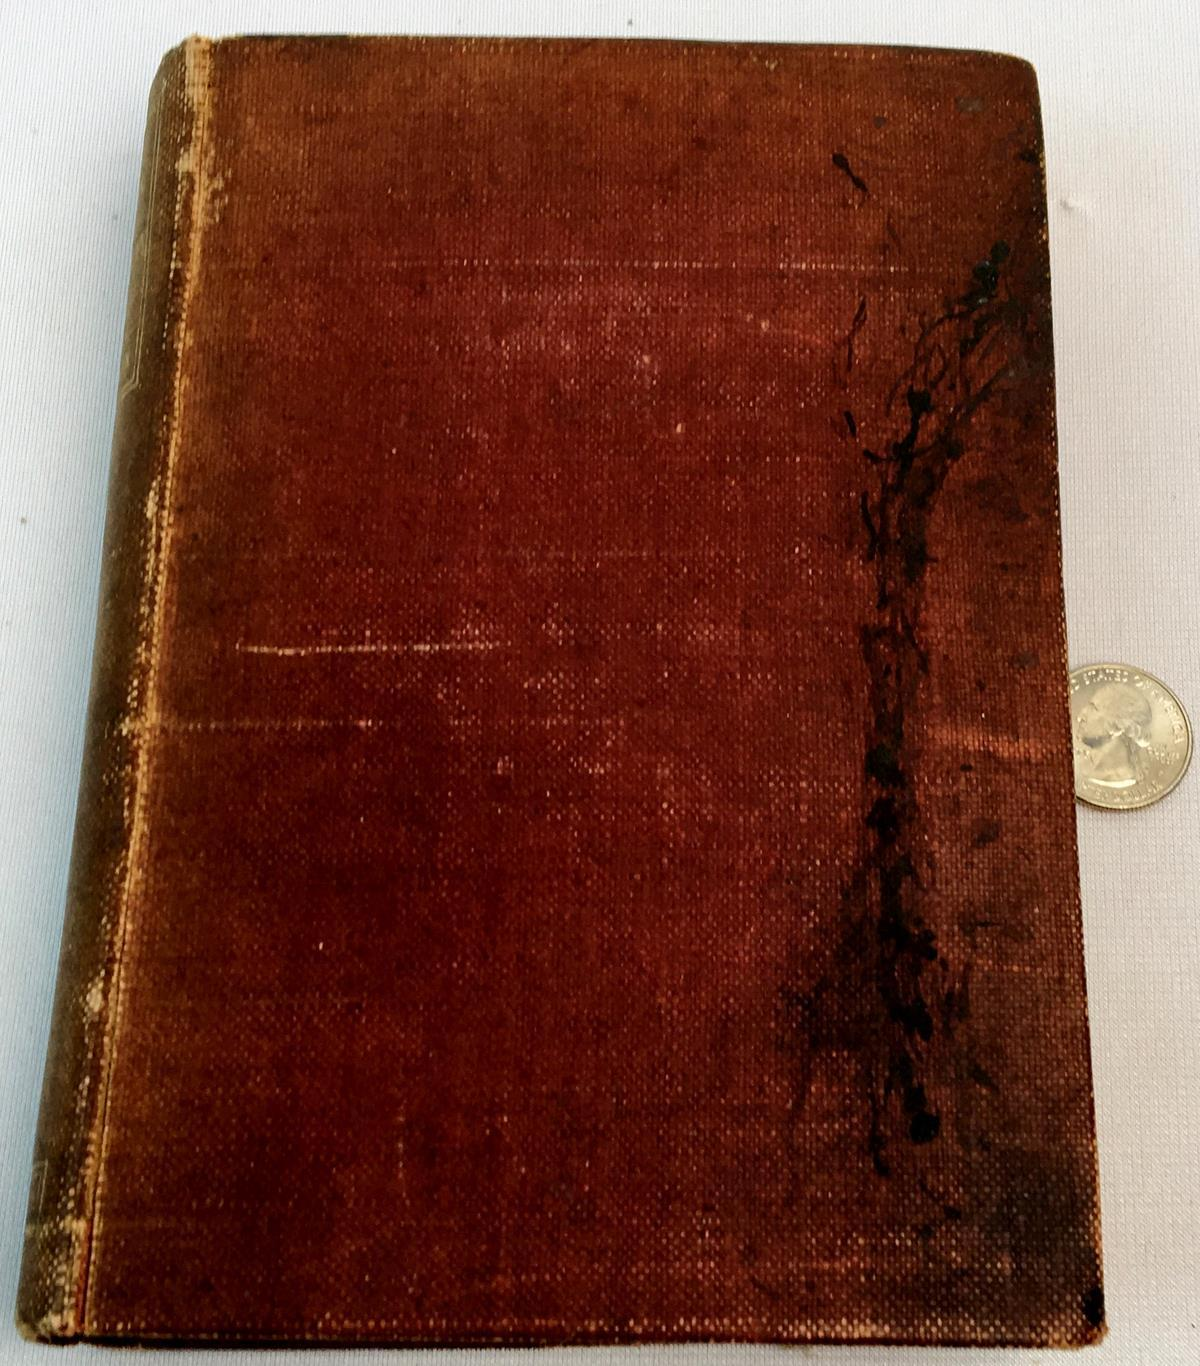 1899 A Paladin of Philanthropy by Austin Dobson SIGNED FIRST EDITION